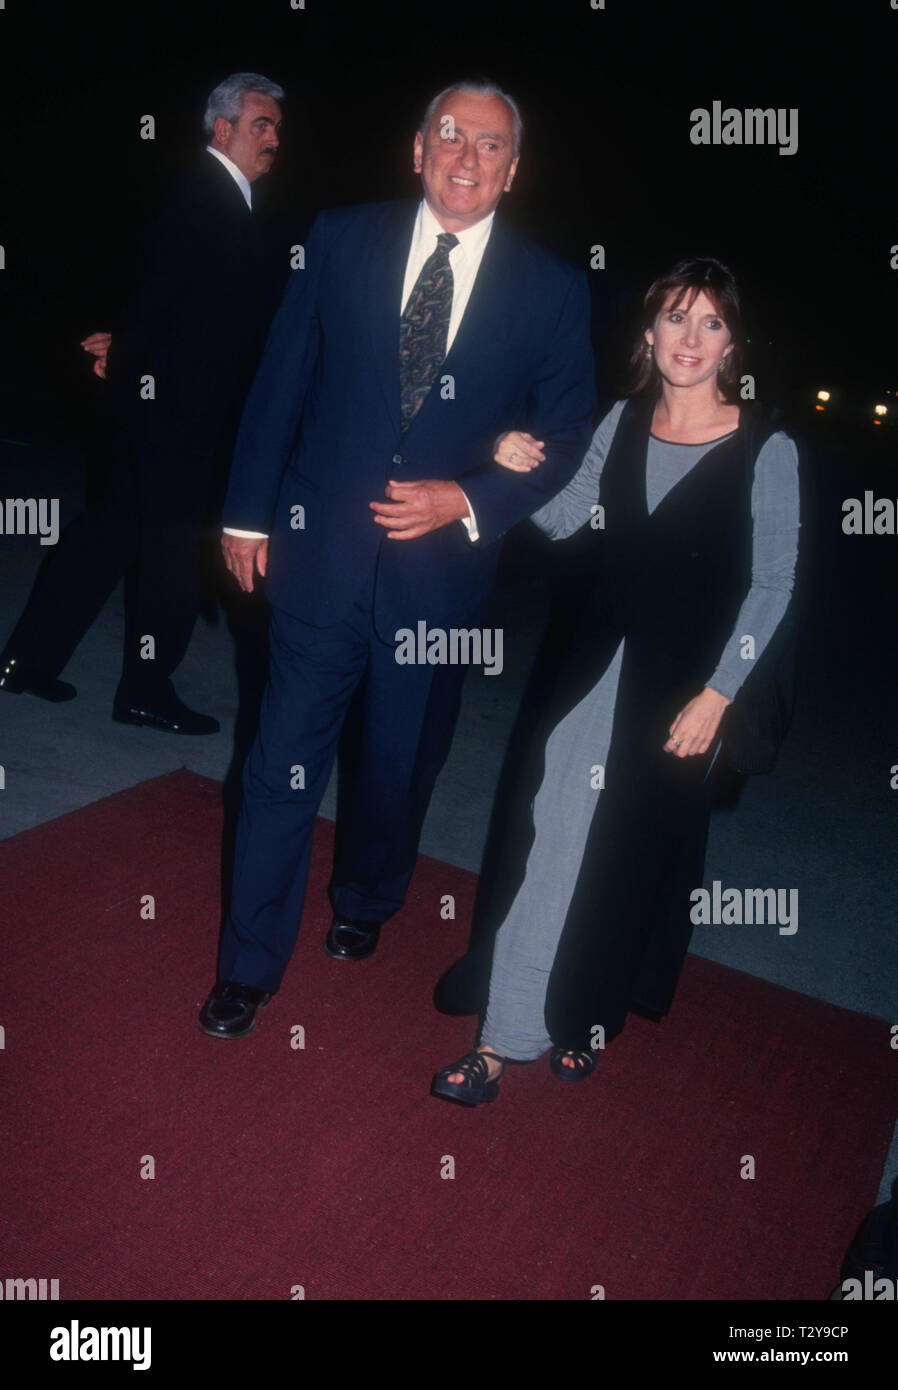 BEL-AIR, CA - MARCH 14: Writer Gore Vidal and actress Carrie Fisher attend Tina Brown Hosts 'The New Yorker Goes to the Movies' on March 14, 1994 at Hotel Bel-Air in Bel-Air, California. Photo by Barry King/Alamy Stock Photo - Stock Image